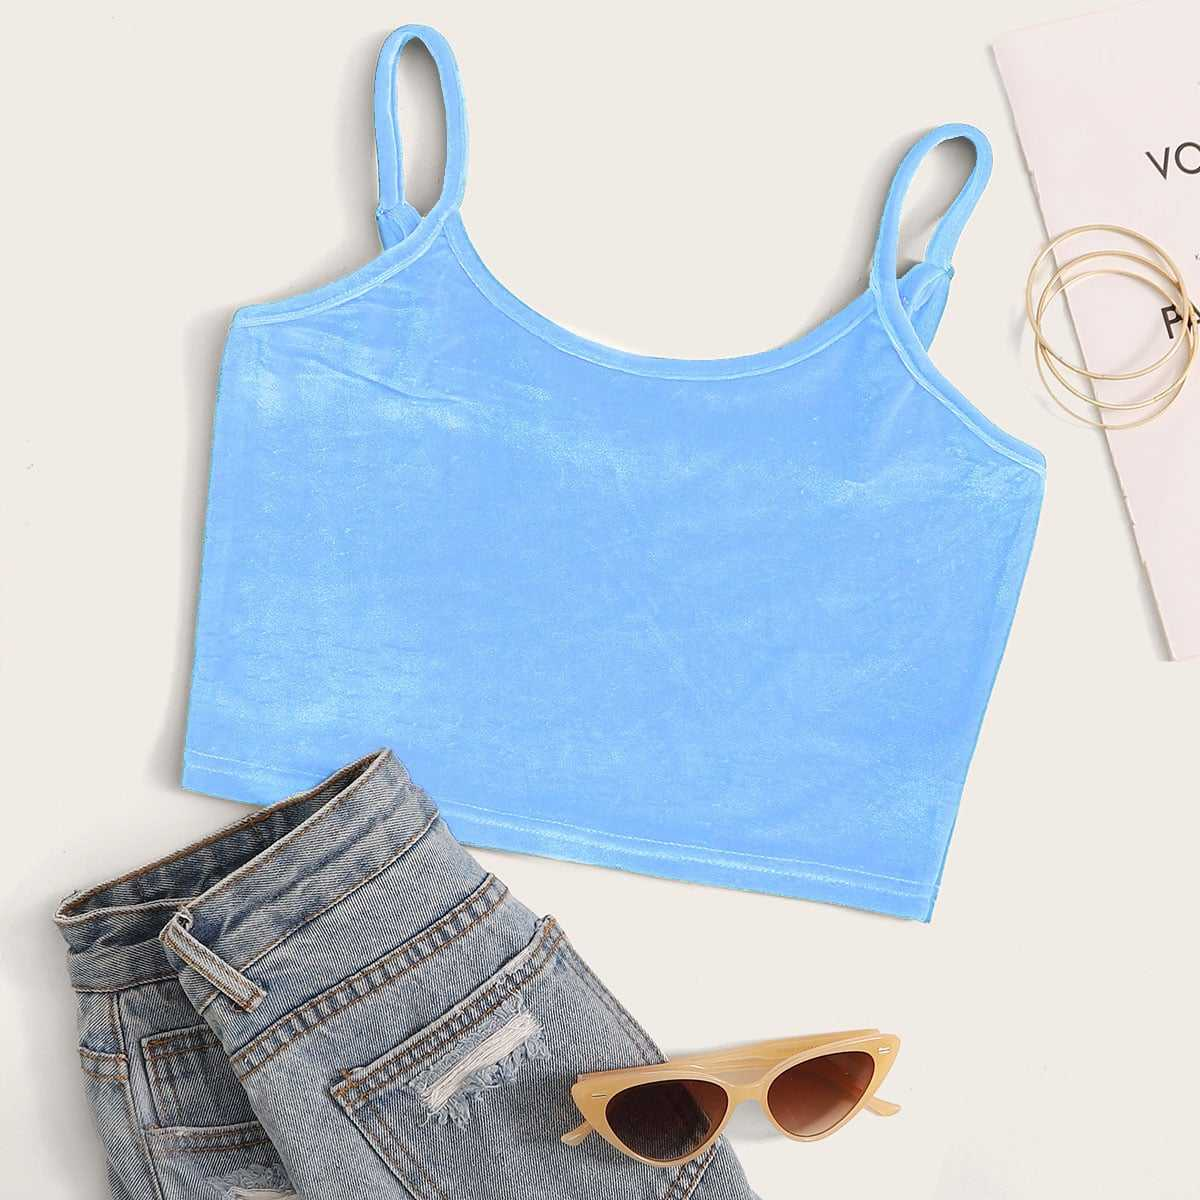 Solid Velvet Crop Cami Top in Blue by ROMWE on GOOFASH